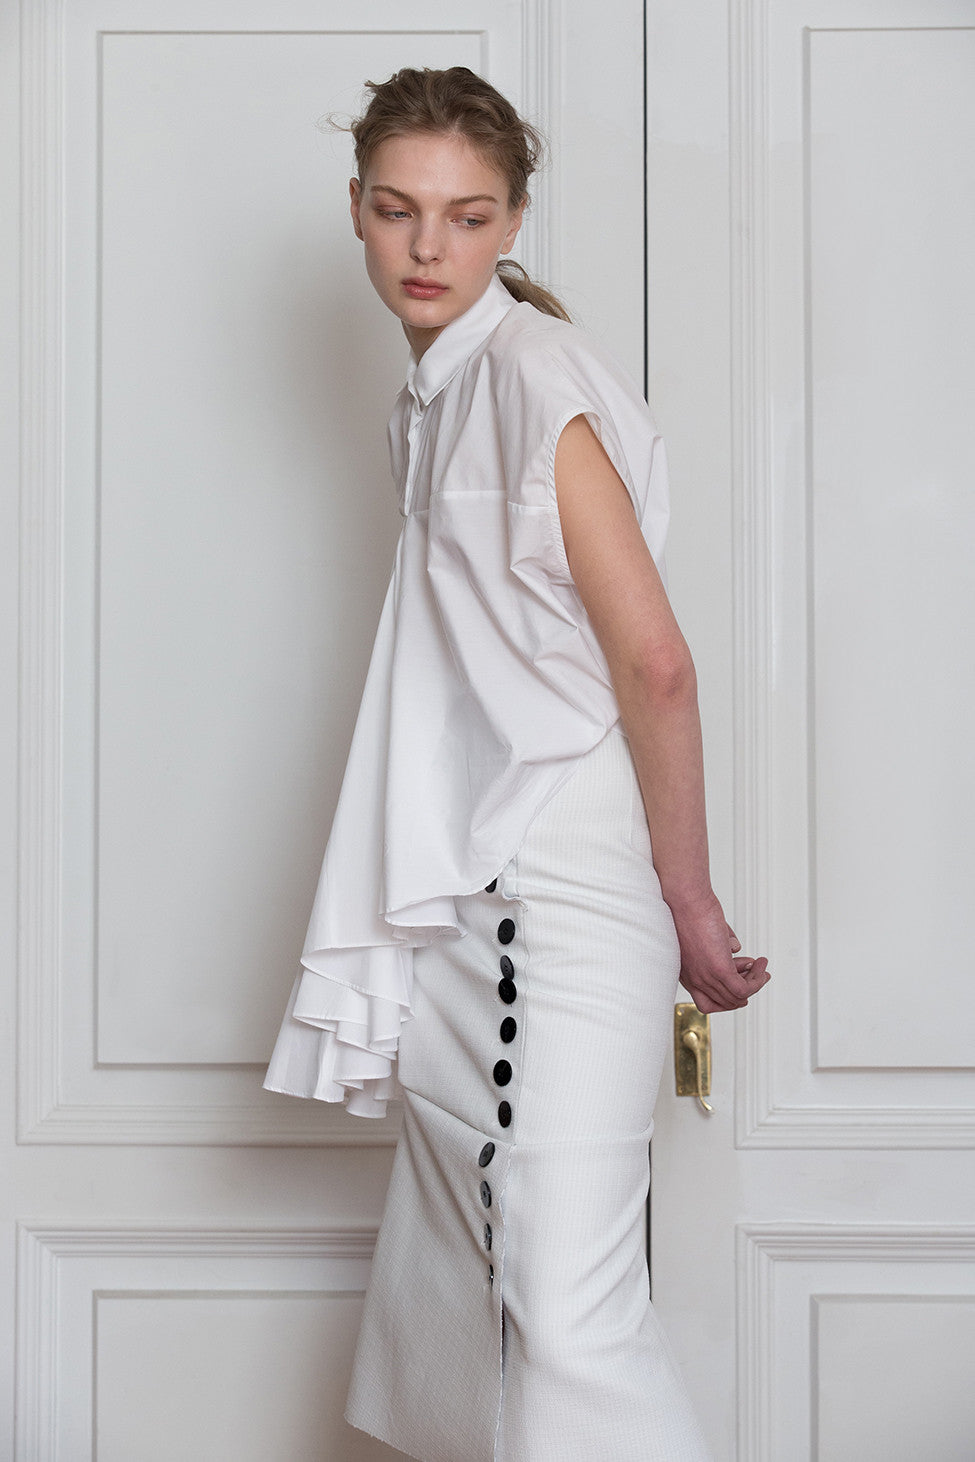 The Aletta Top in White featuring classic collar and asymmetric button down closure, cap sleeves, gathered flutter ruffle detailing.